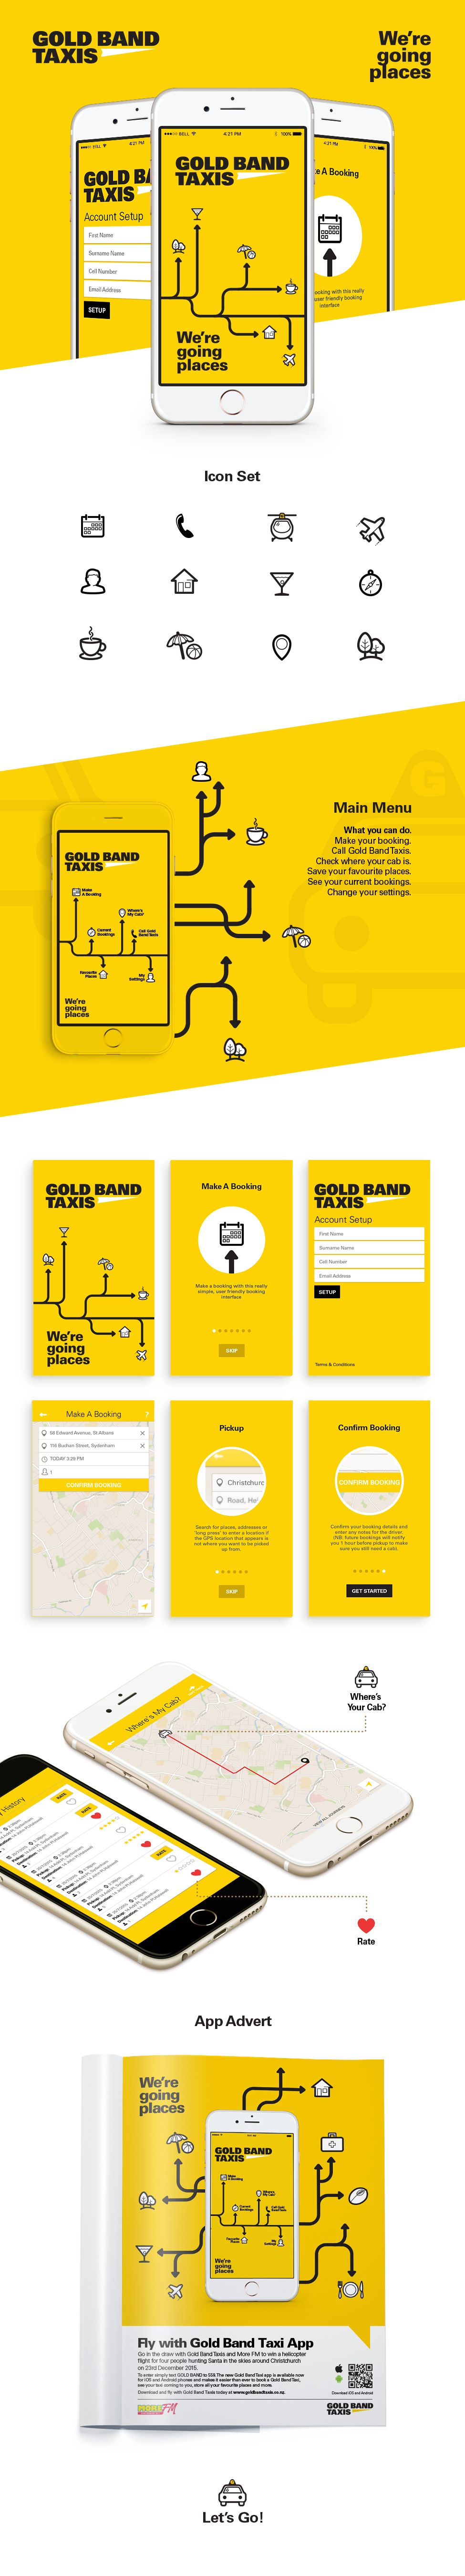 Gold Band Taxis iOs & Android App for booking taxis   Designed & developed by @studiopublica